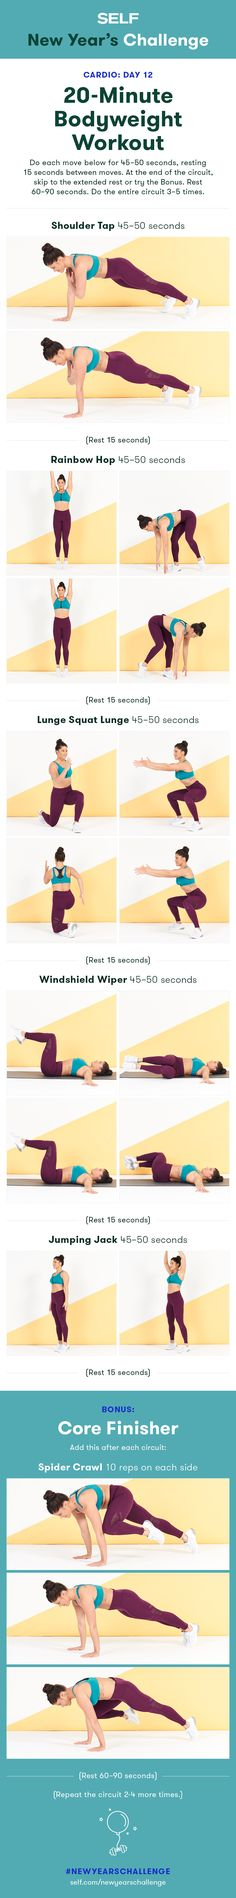 Welcome to our #NewYearsChallenge! Try this 20-minute bodyweight workout for women with shoulder taps and lunges for total body exercise!